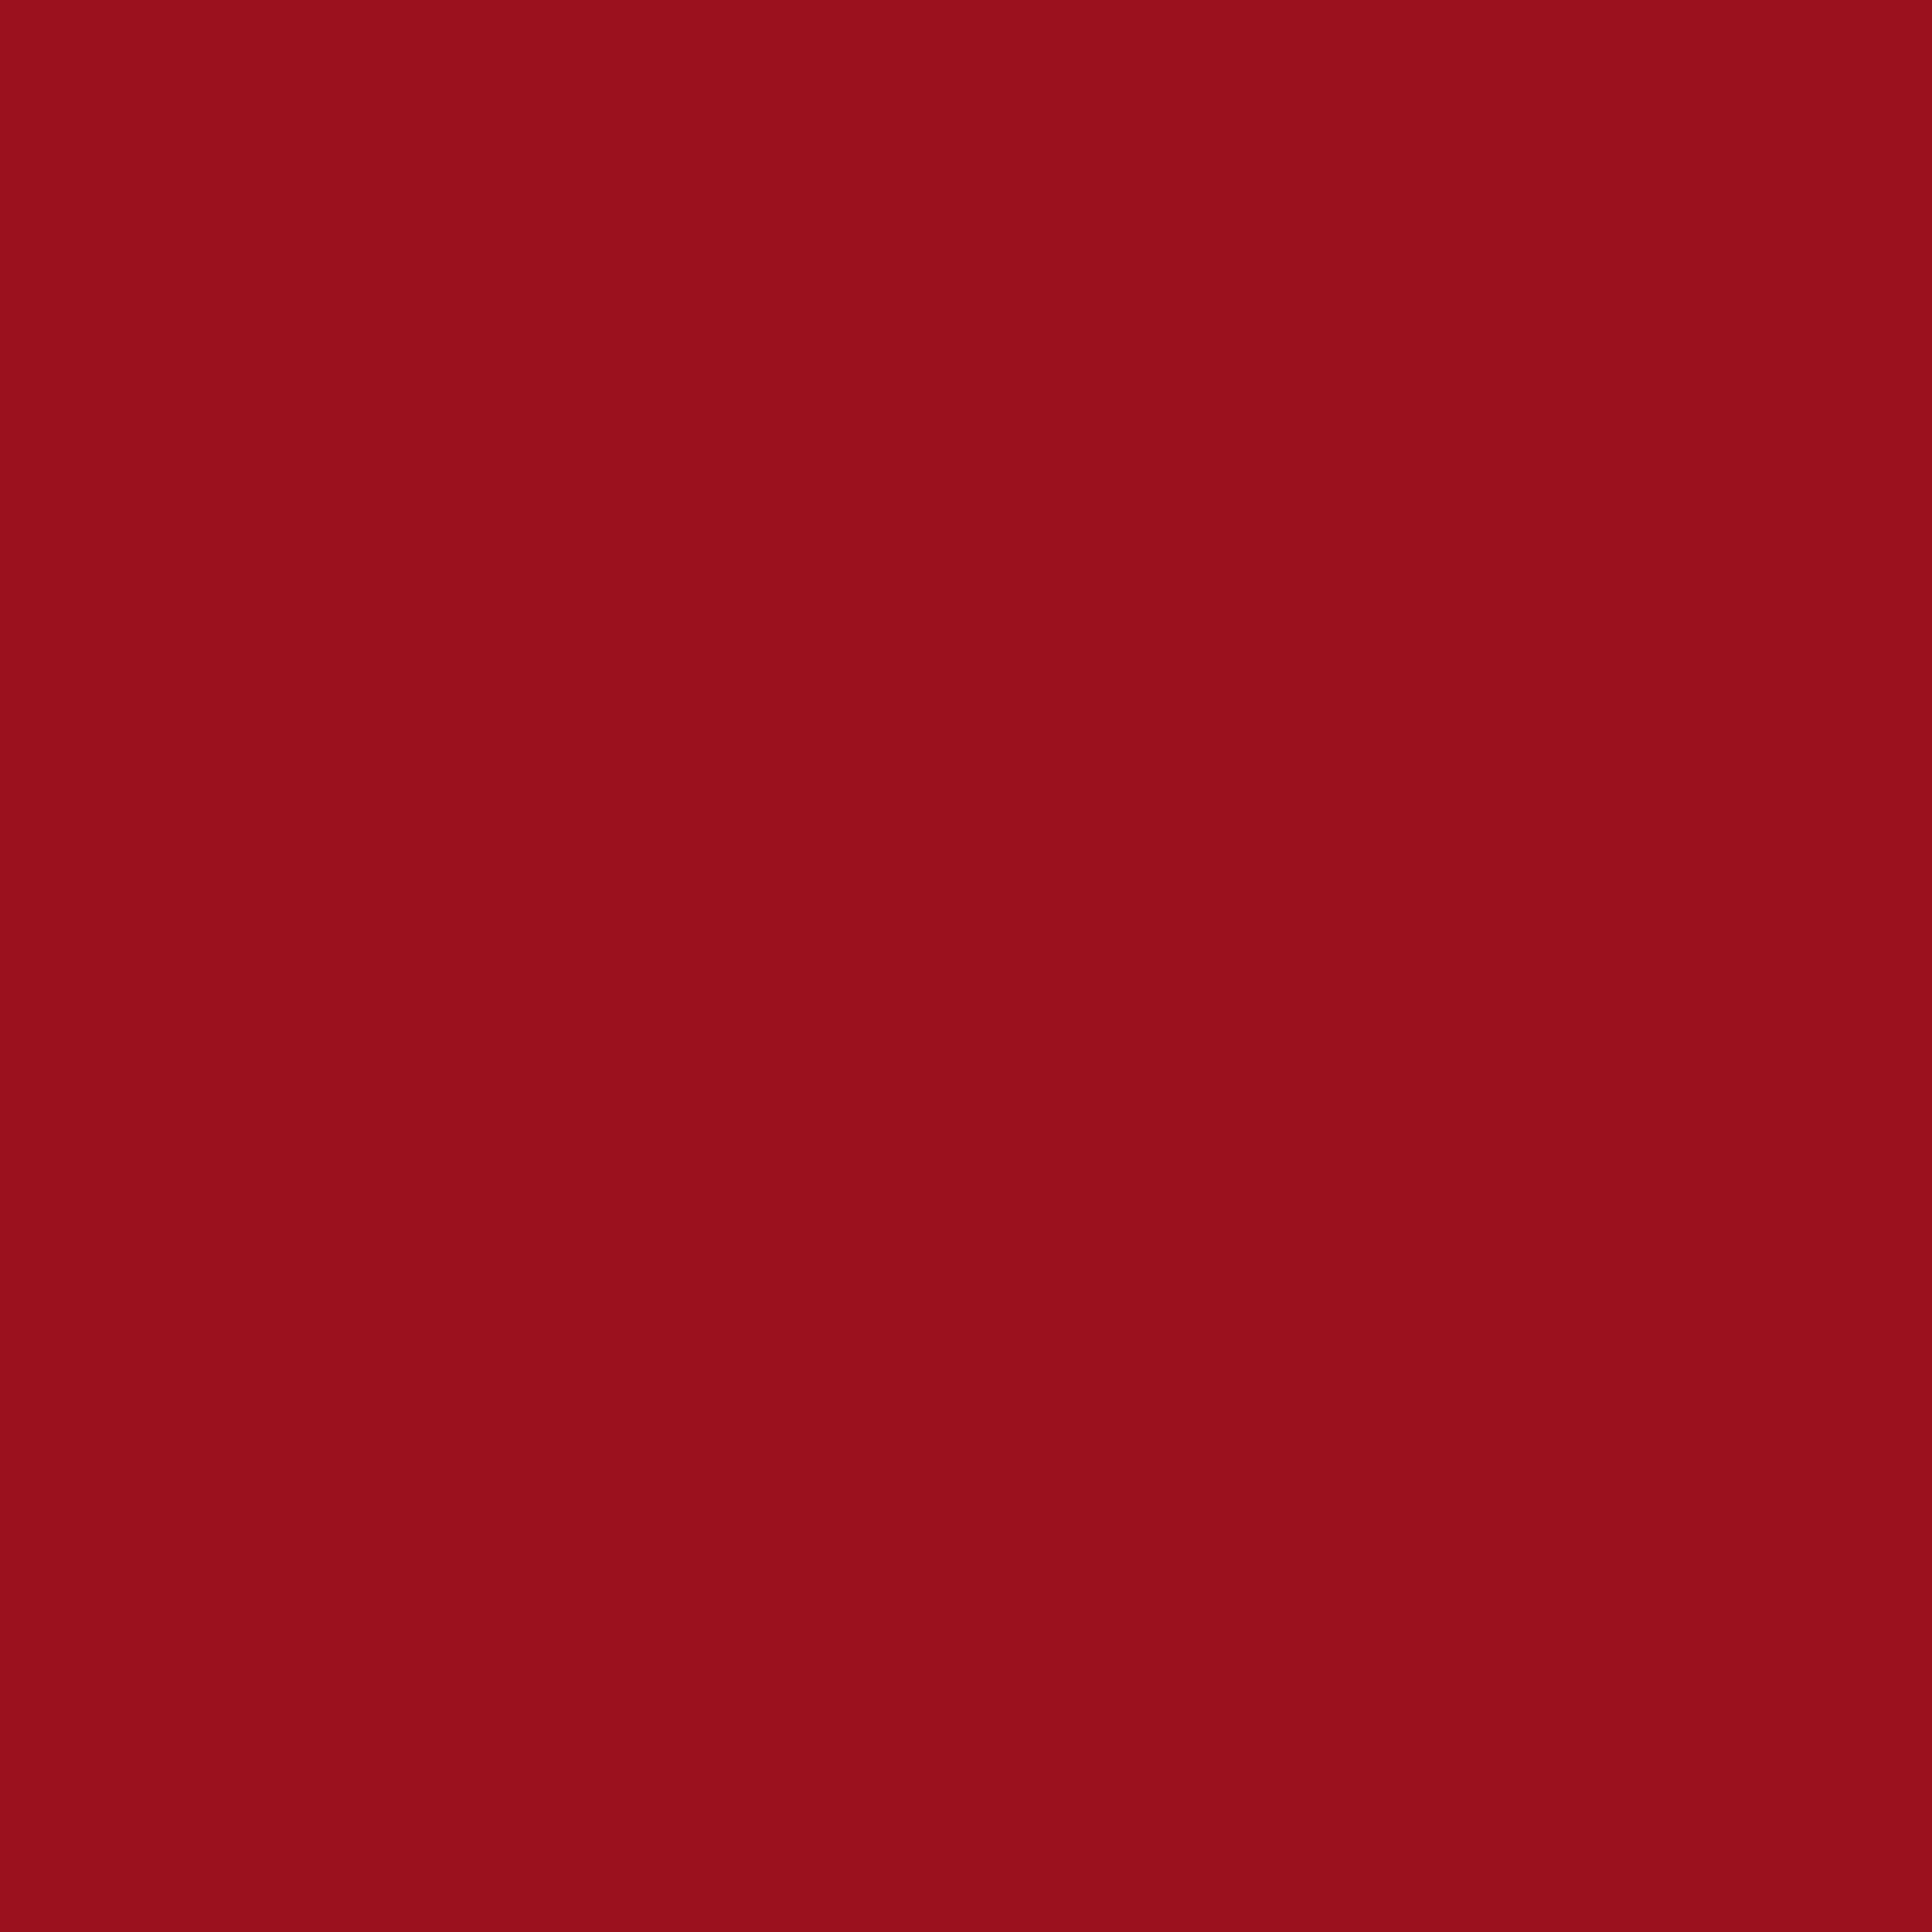 3600x3600 Ruby Red Solid Color Background